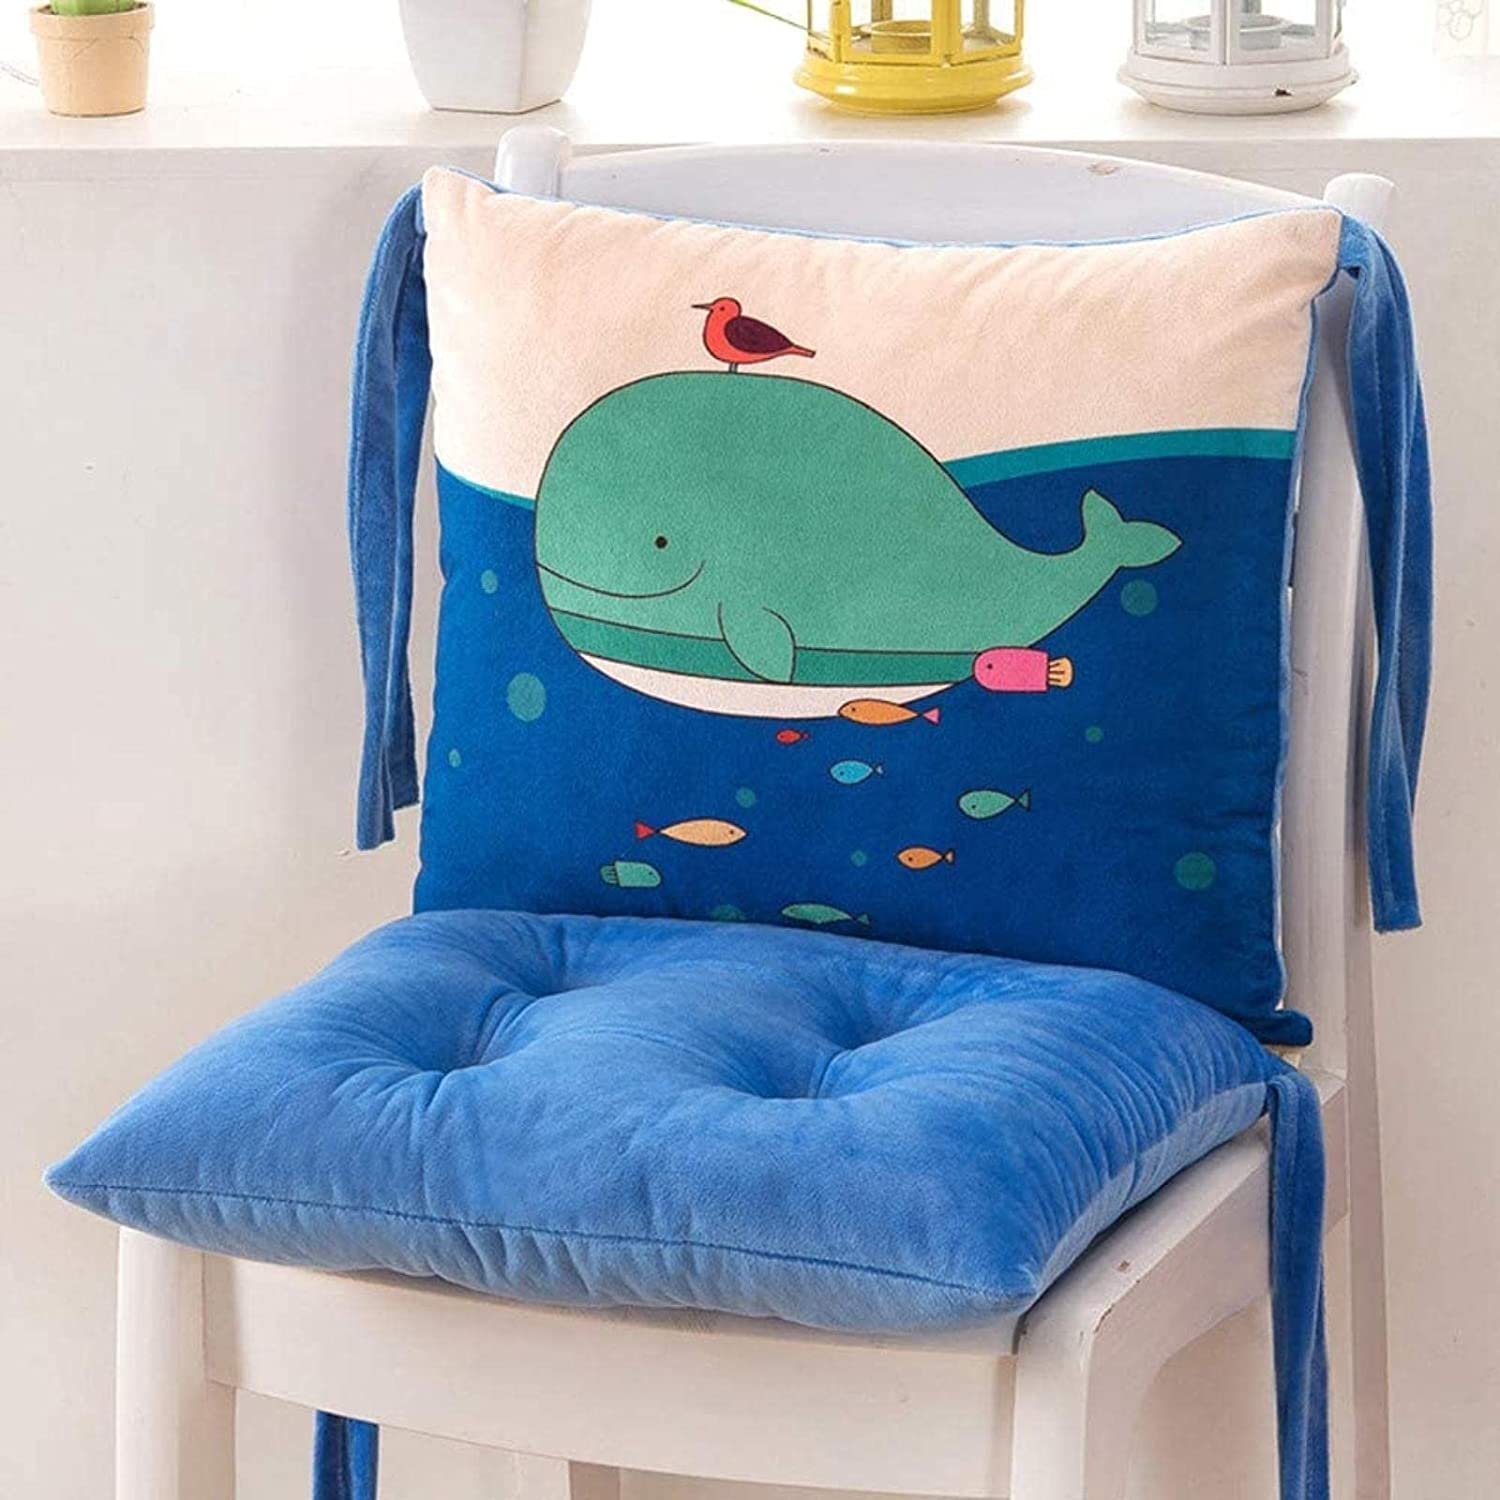 HZYDD Soft Plush New York Mall Chair Phoenix Mall Cushion Th One-Piece with Straps